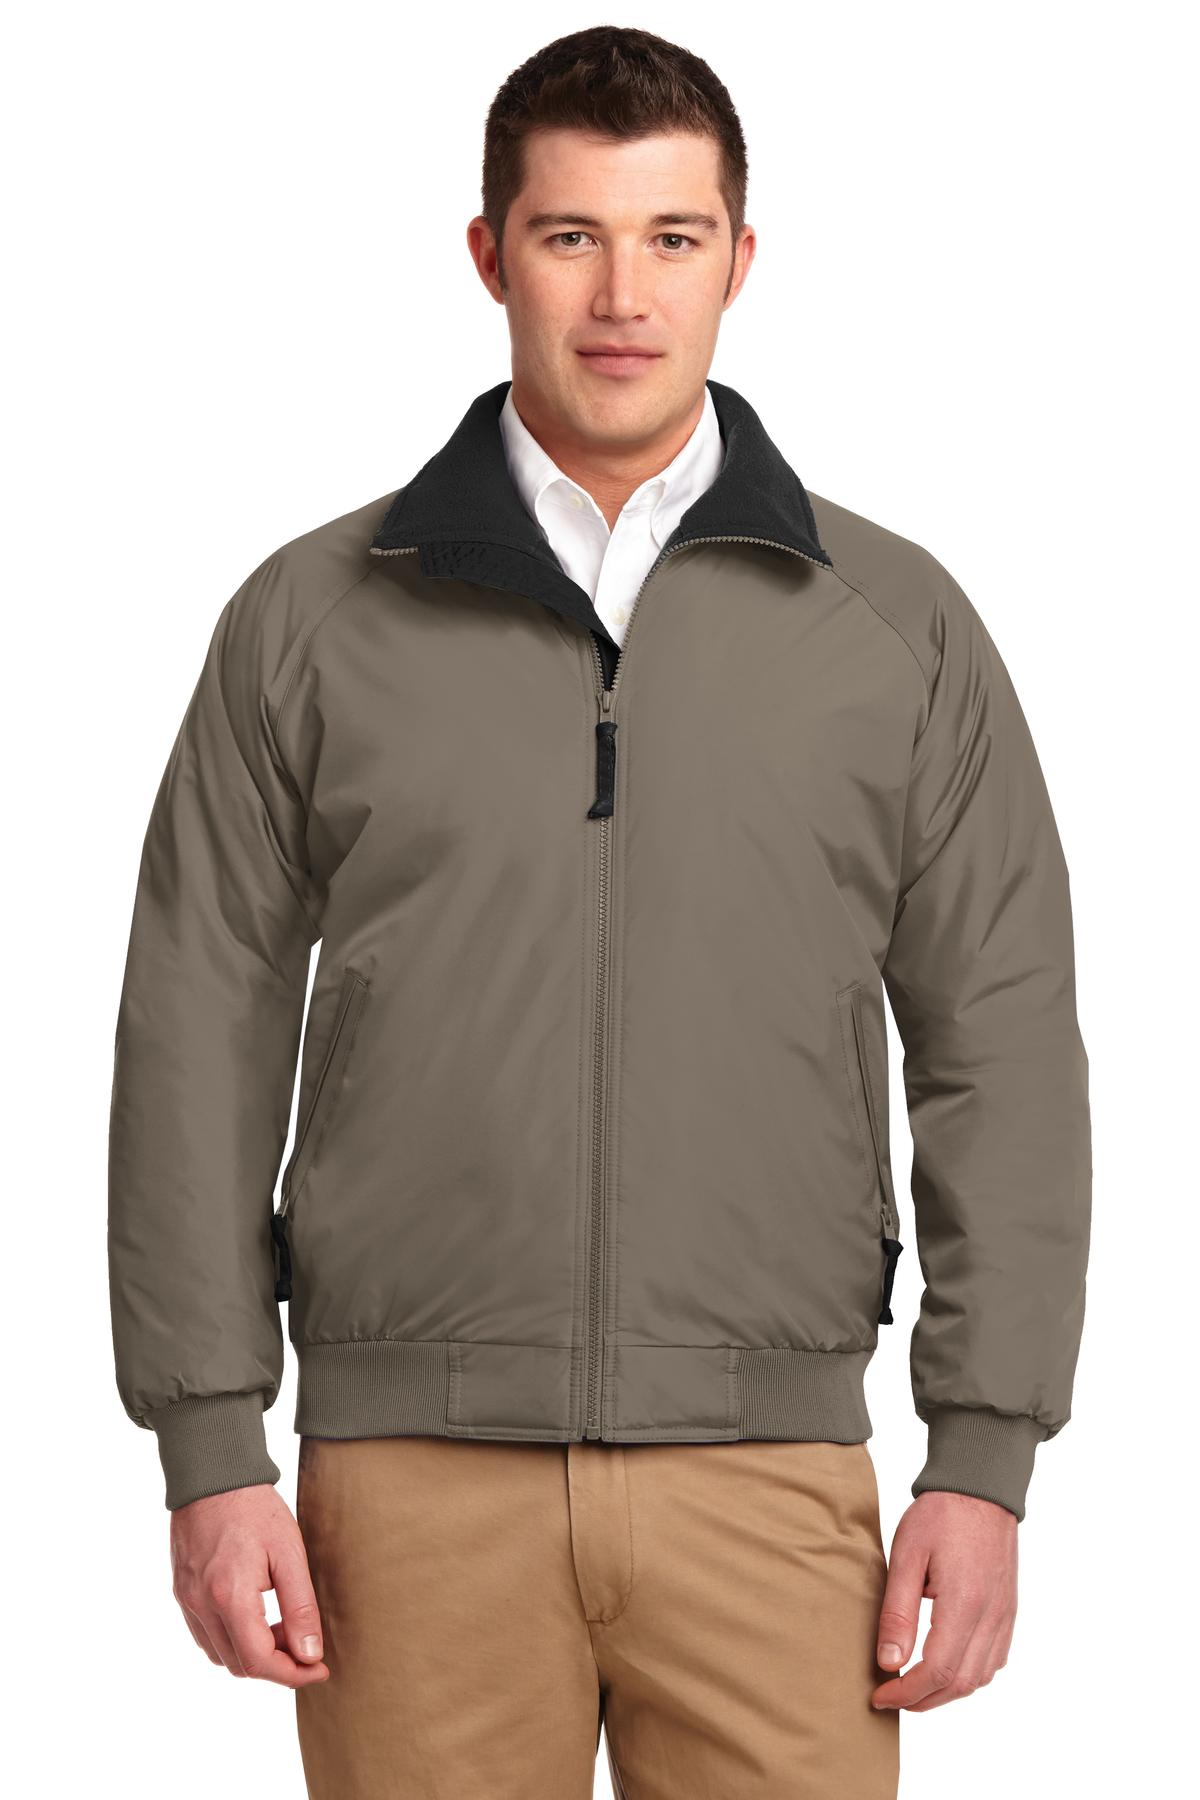 Outerwear-Insulated-Jackets-18